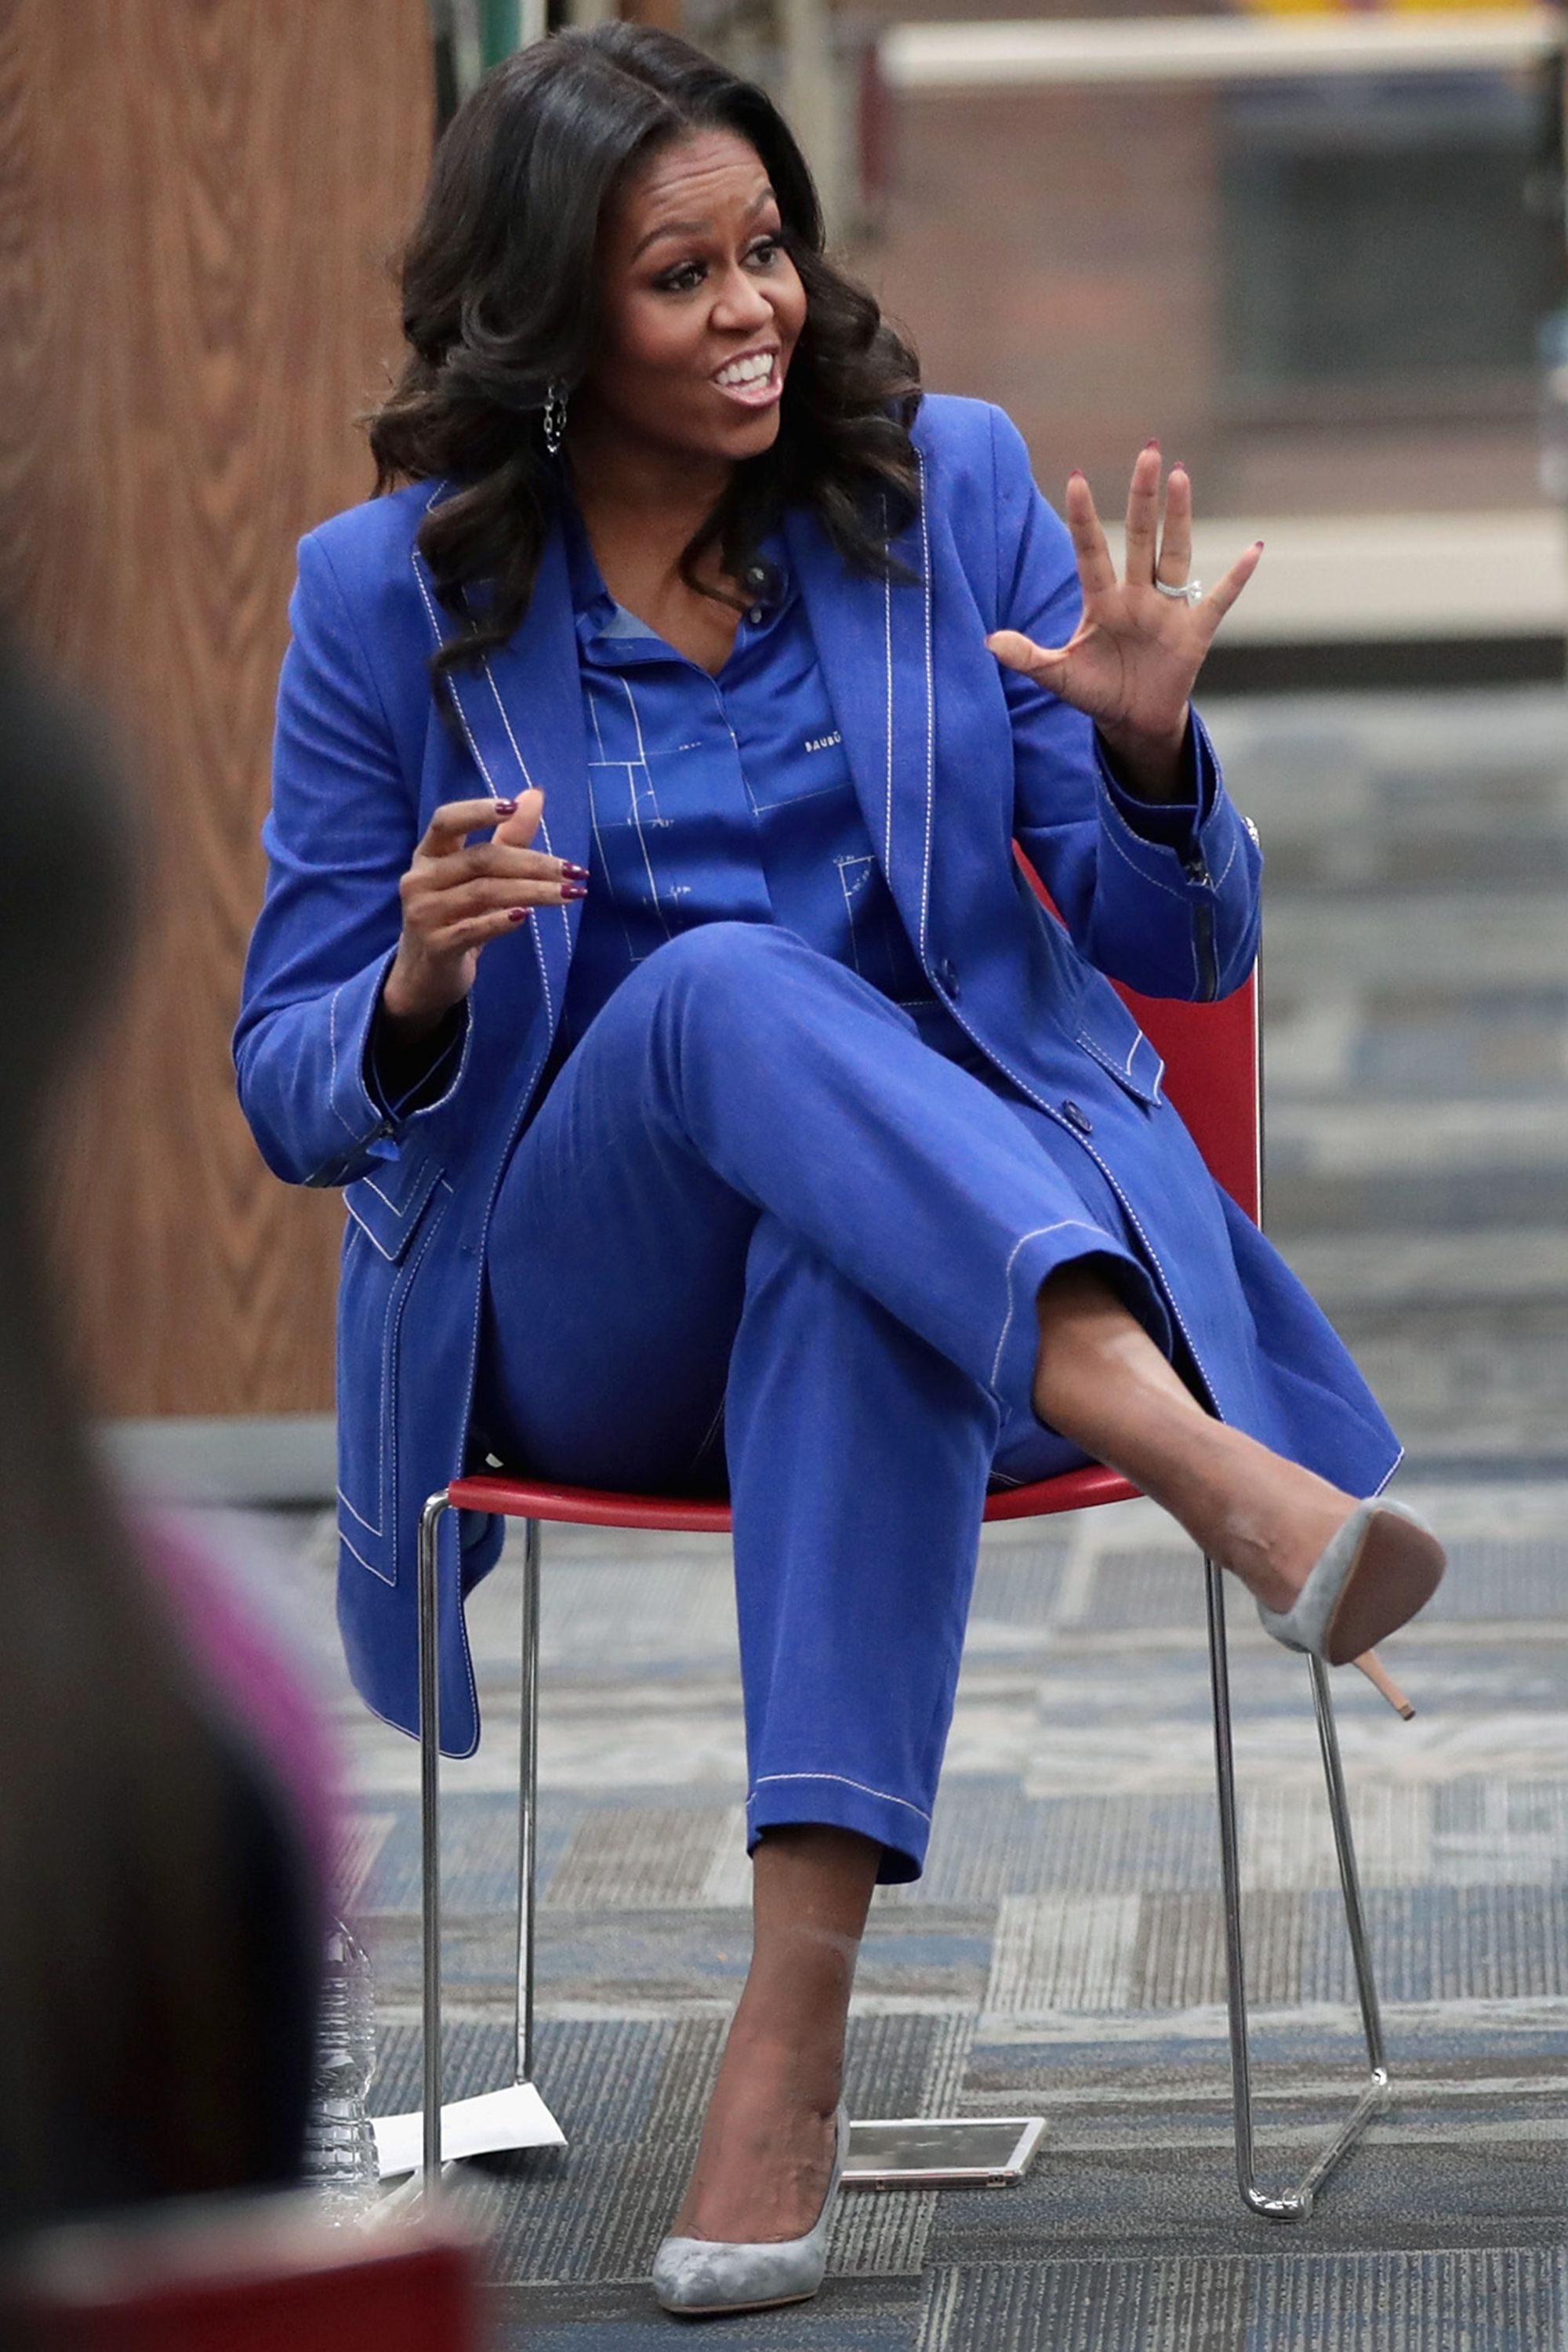 e81e47410c790 Michelle Obama s Best Looks - Michelle Obama Style Fashion and Outfits